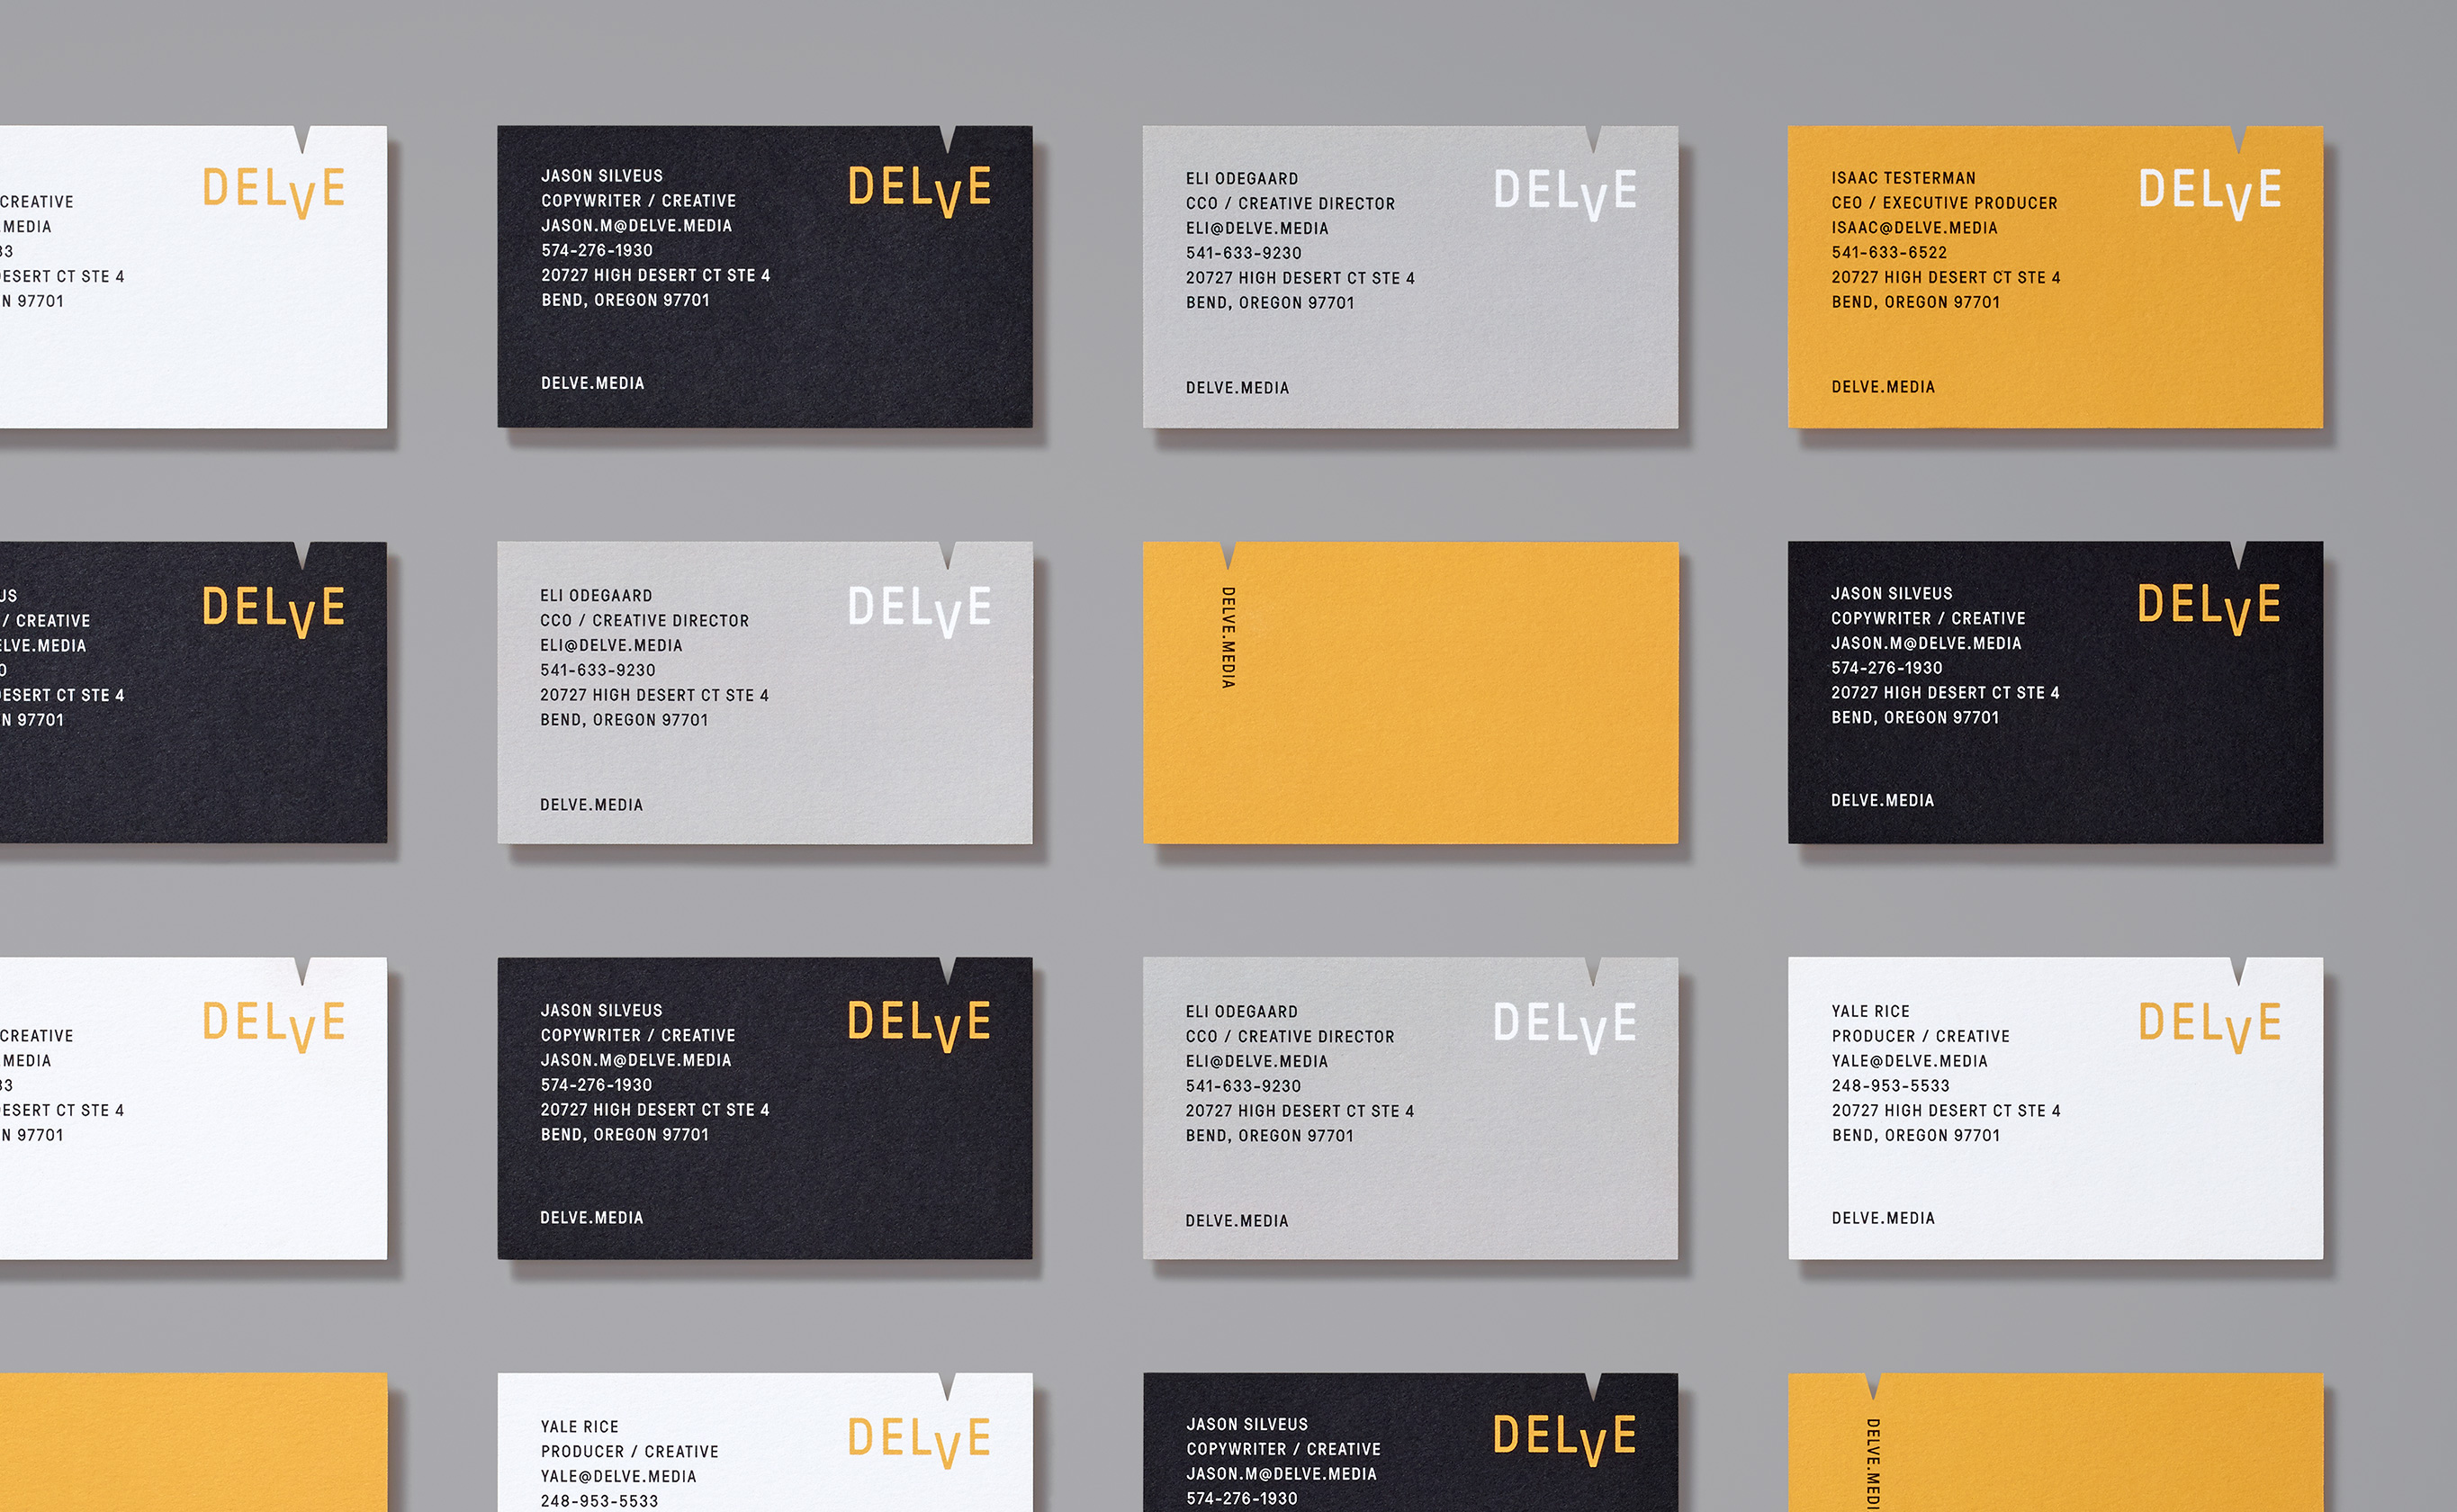 delve_cards_01_2730x1680